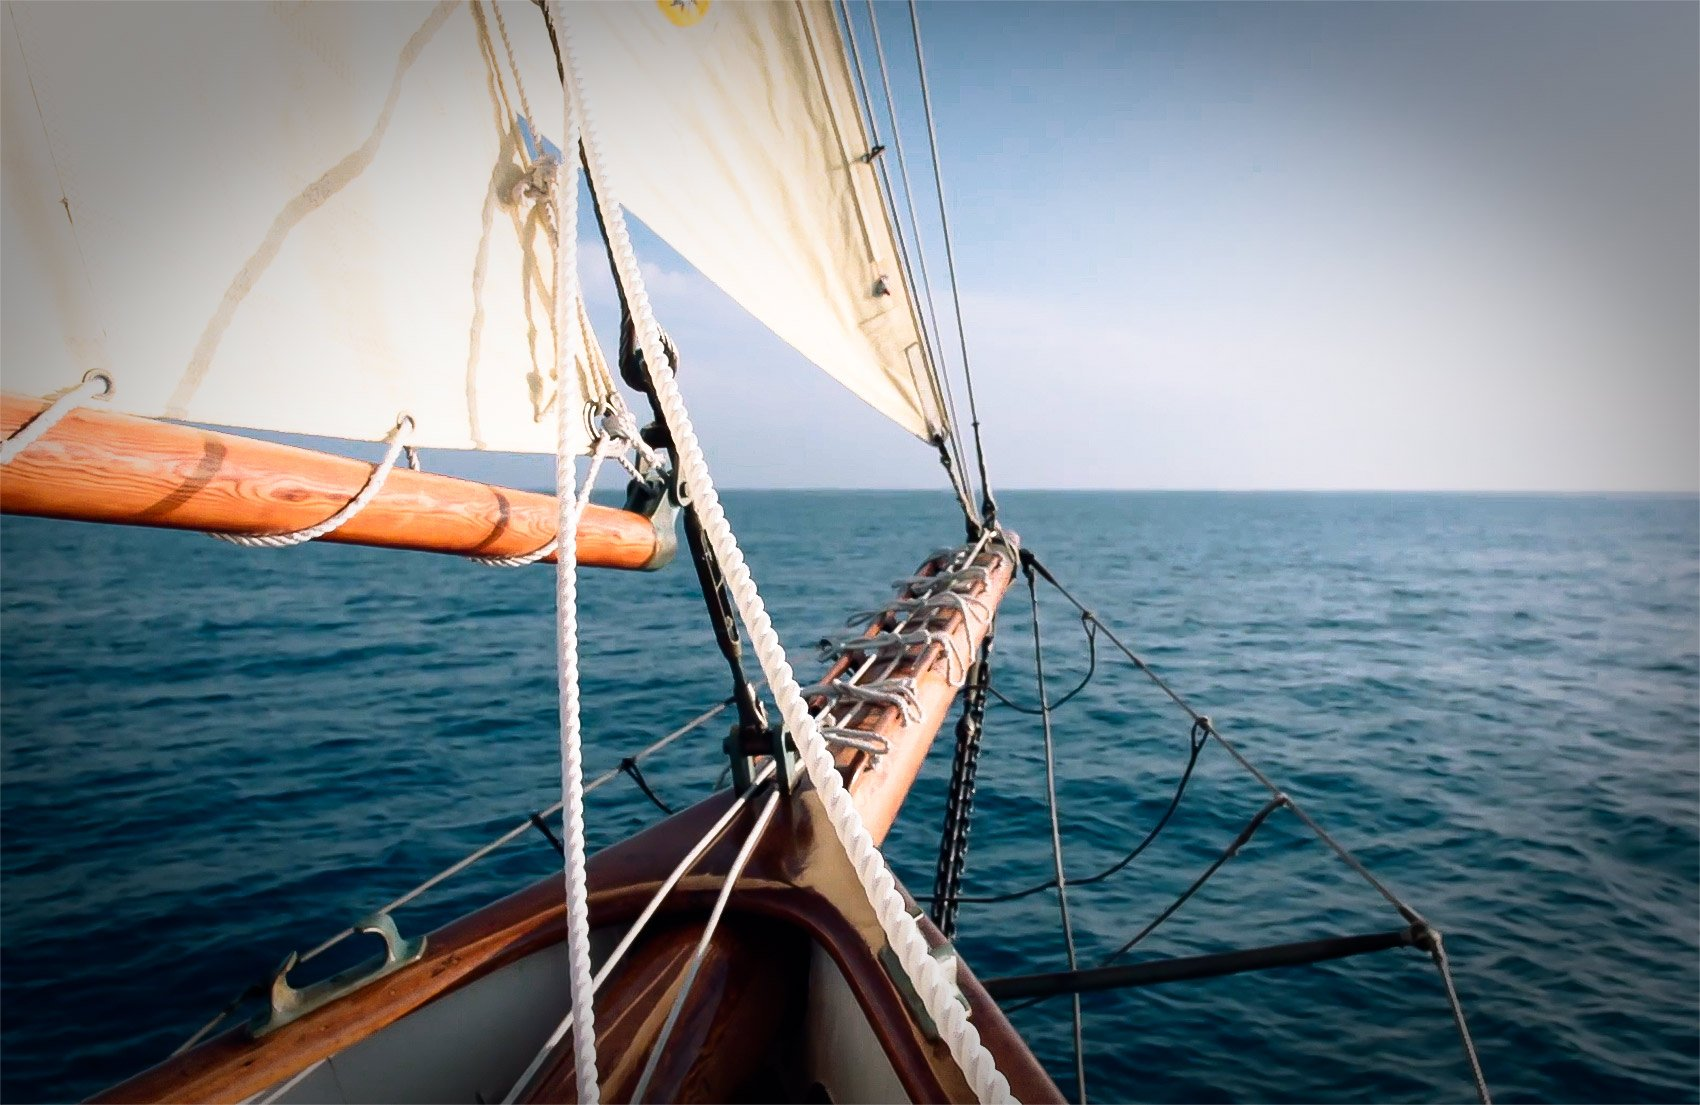 a-sailing-experience-like-no-other-gessato-9